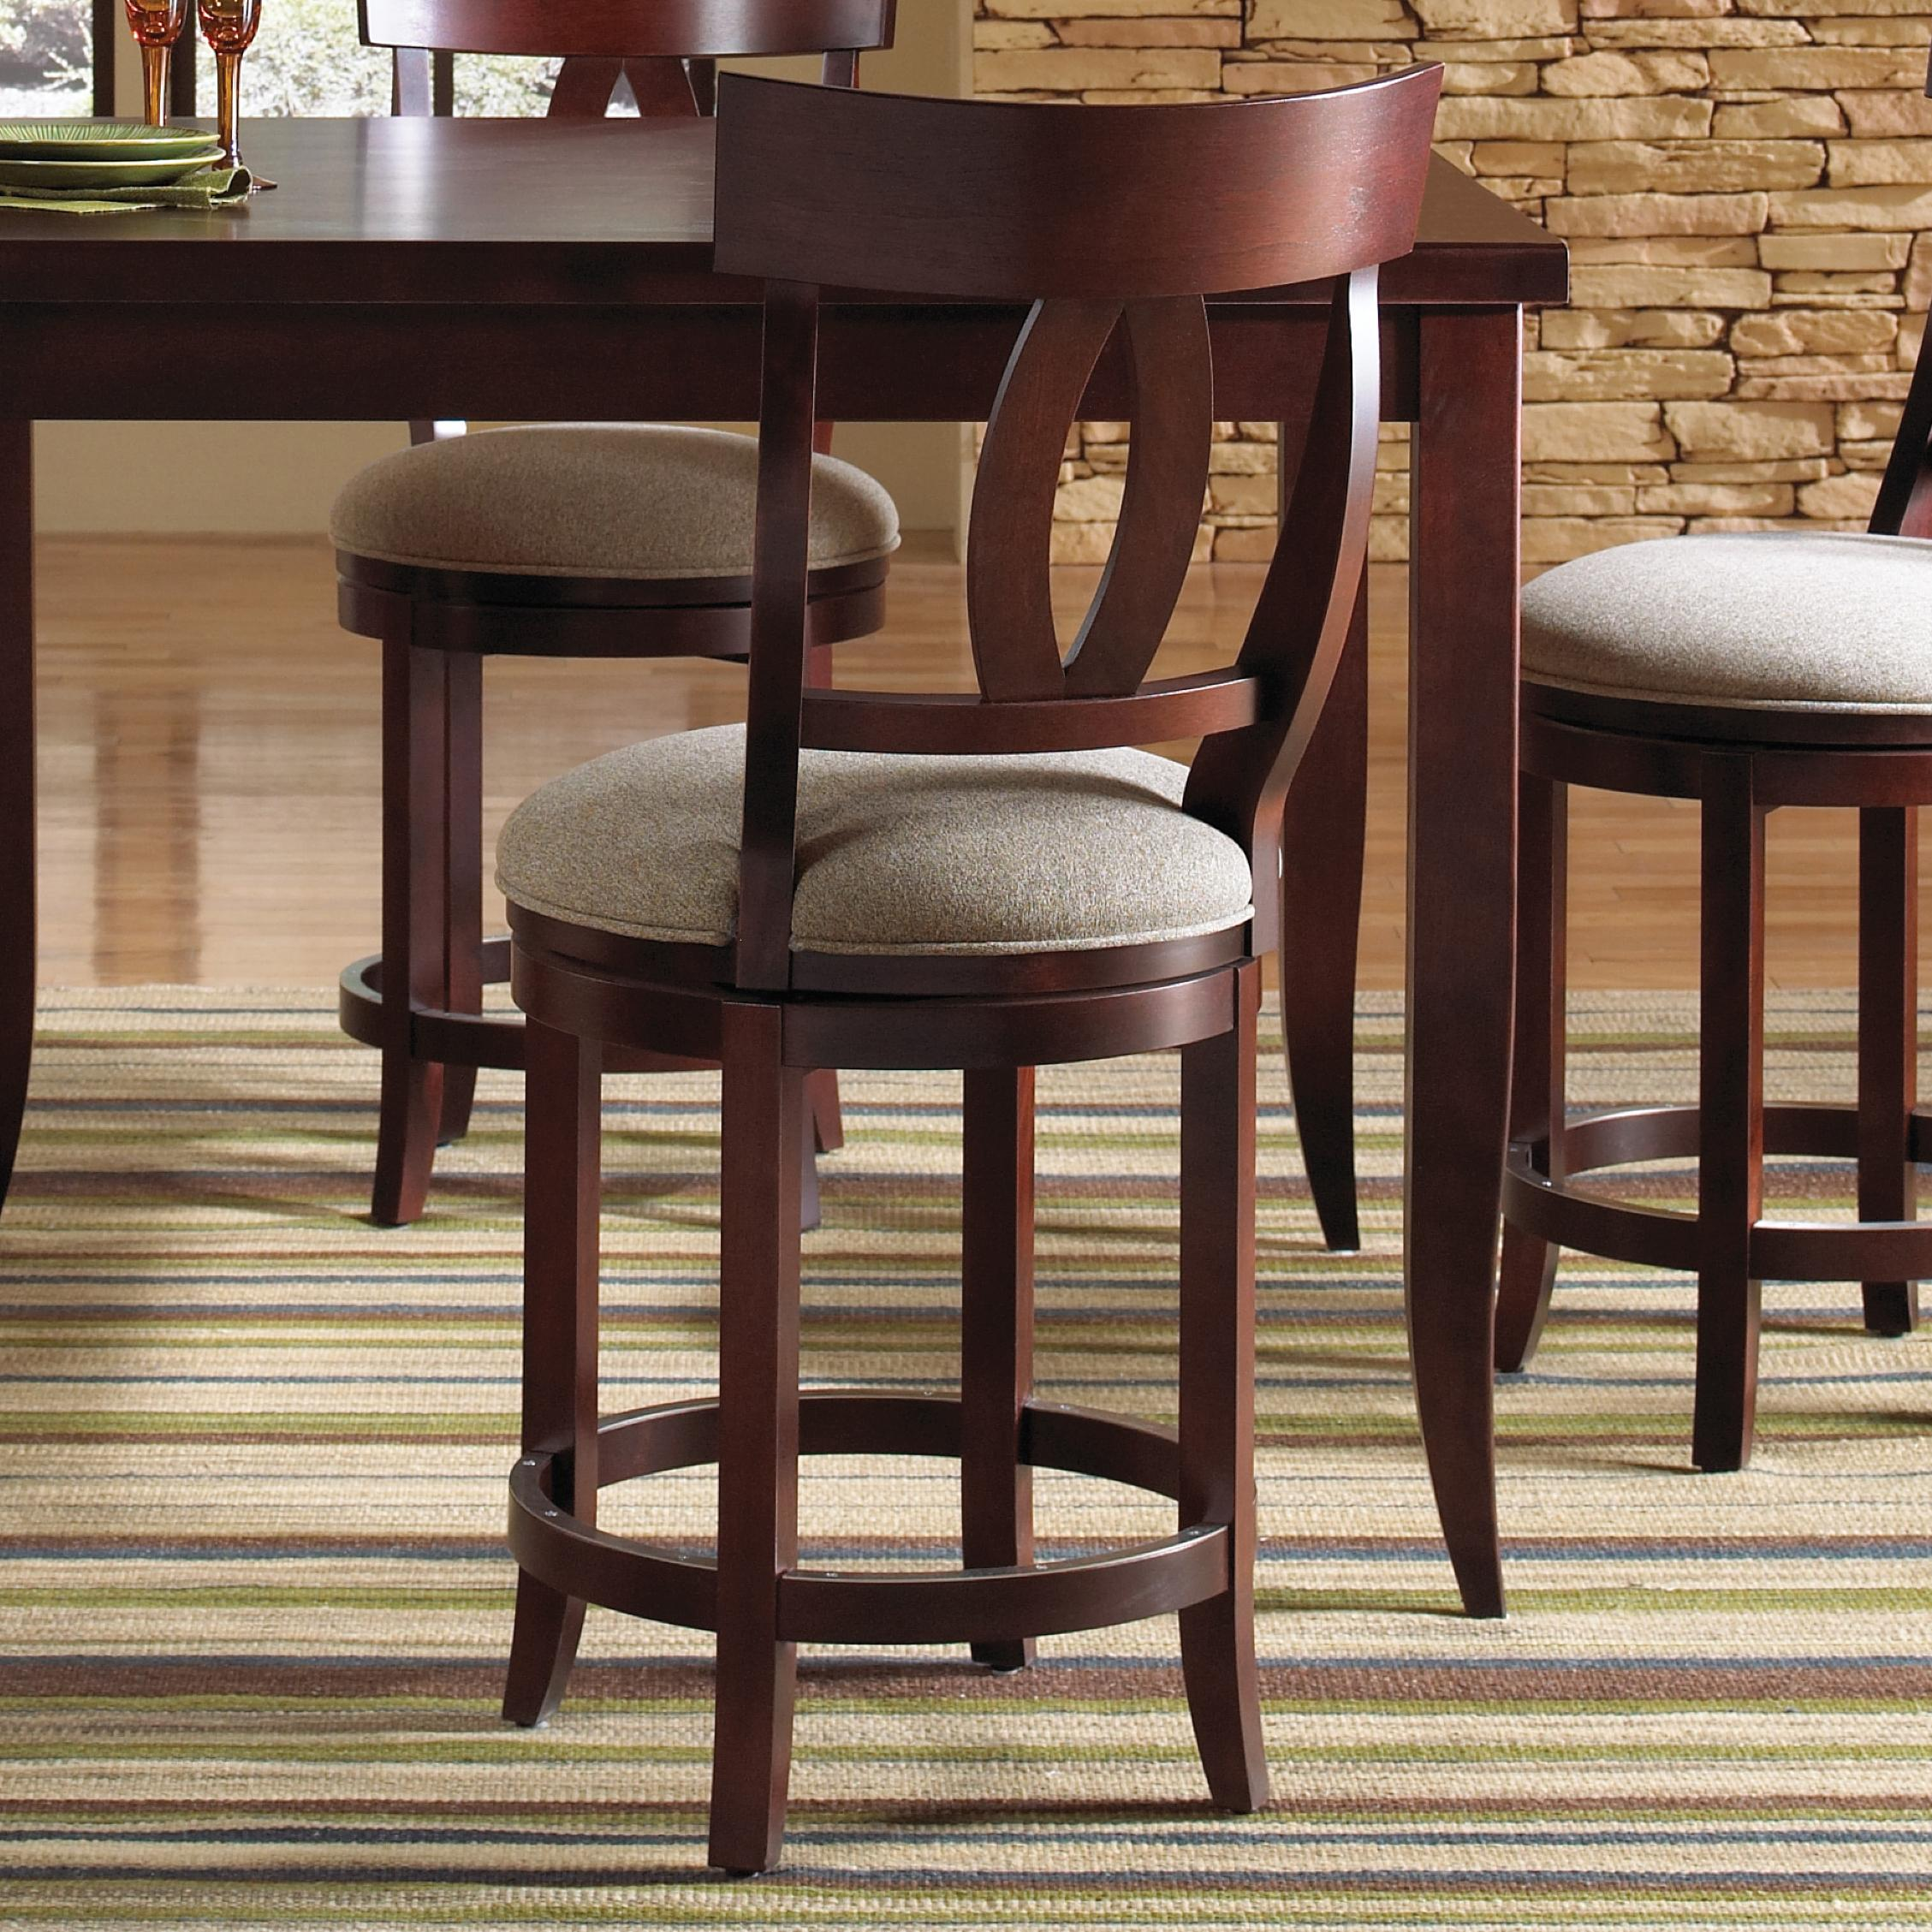 High Dining Room Chairs: High Dining SNS08100TZ24M24